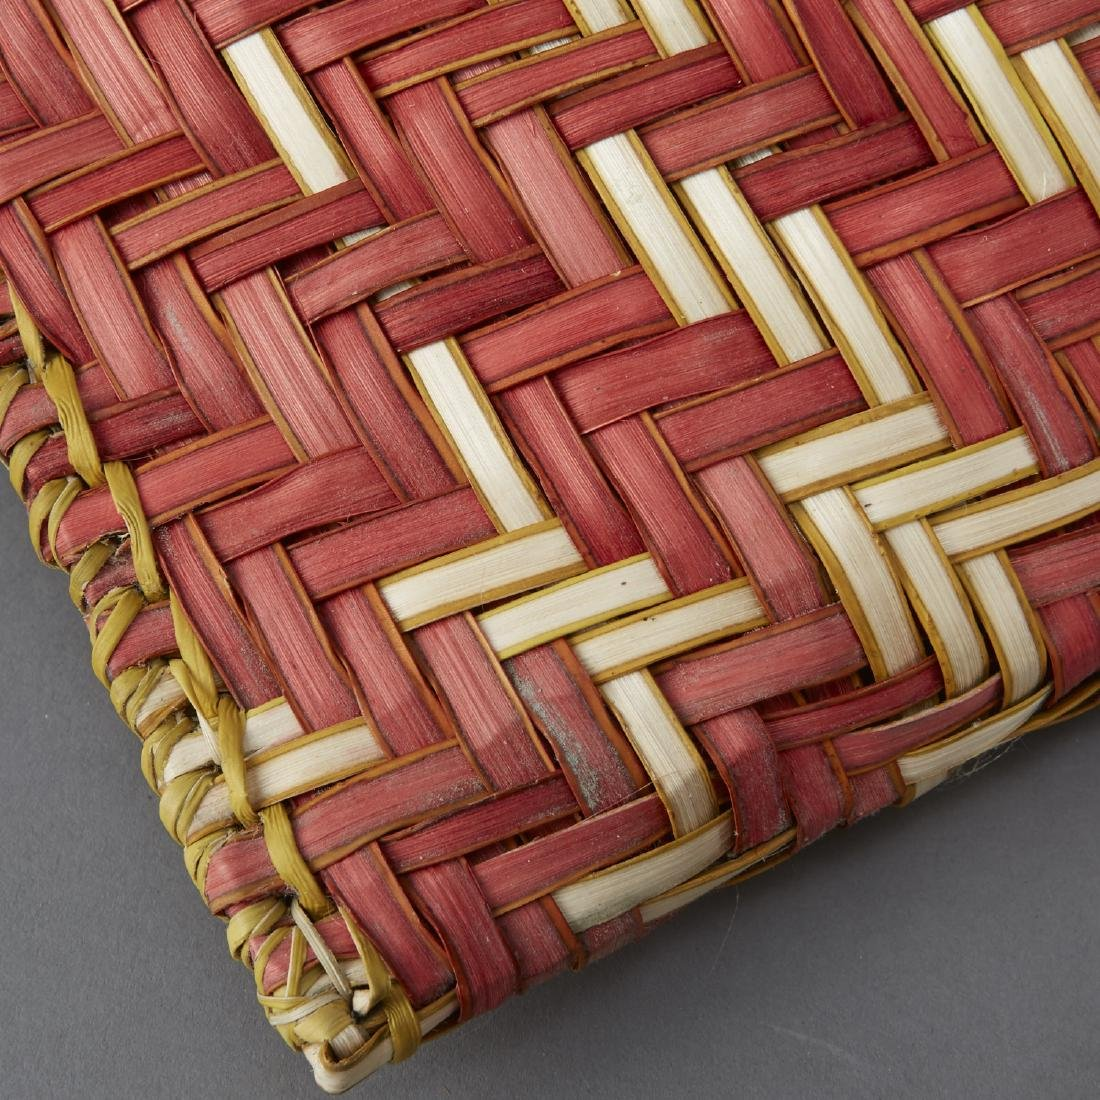 Group of 11 Native American Woven Objects - 3